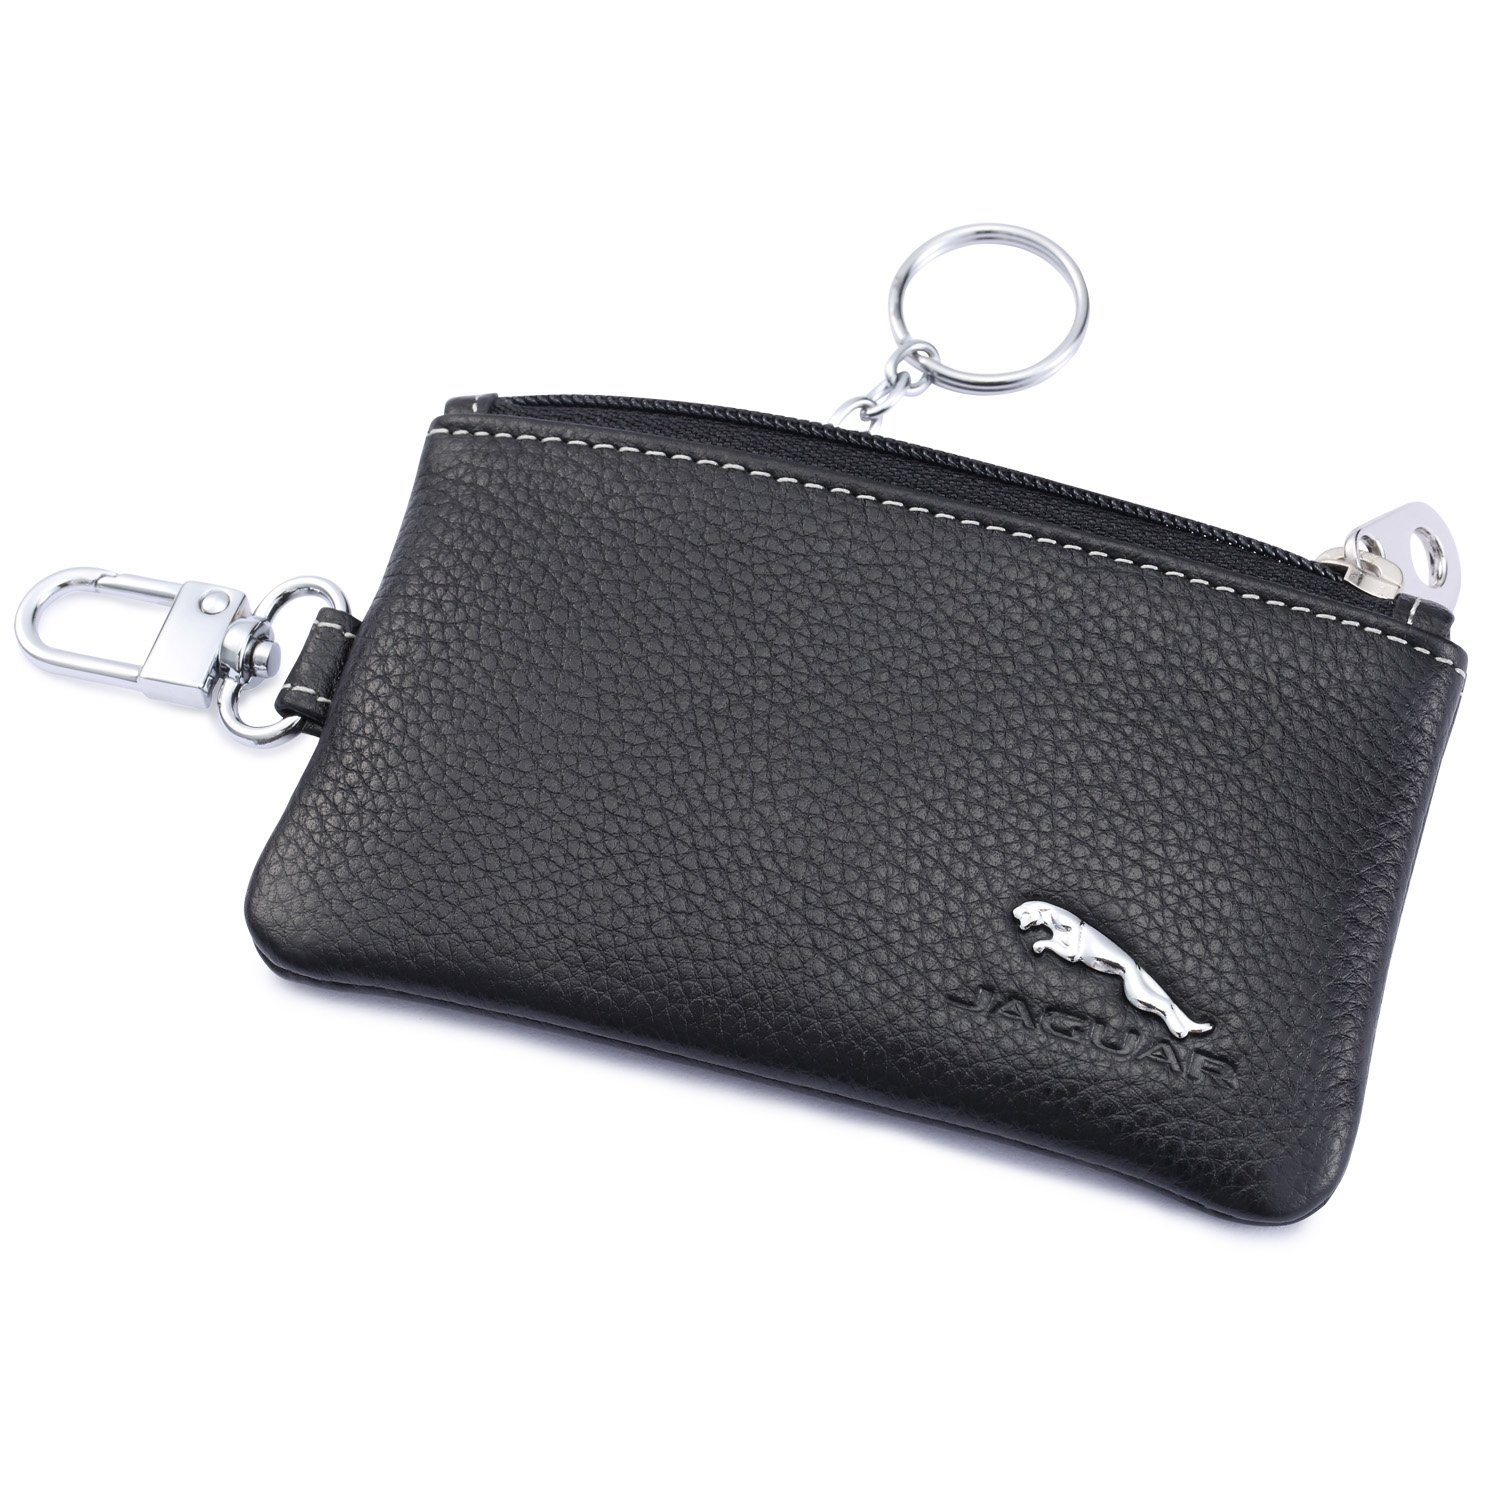 Jaguar Car Key Holder Remote Cover Fob with 1 Metal Keychain - Genuine Leather